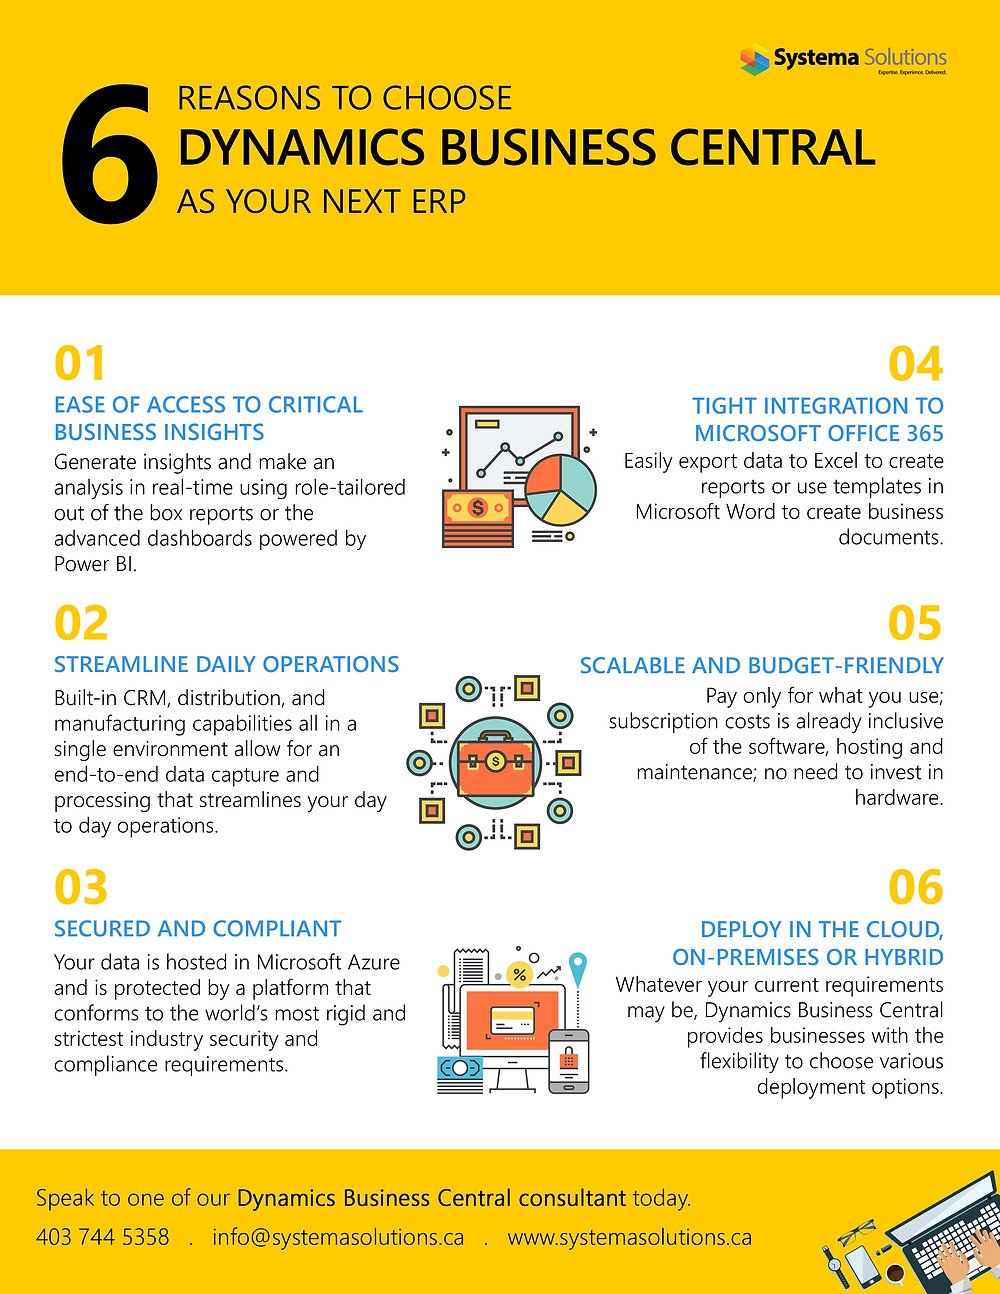 6 Reasons to choose Dynamics Business Central as your next ERP